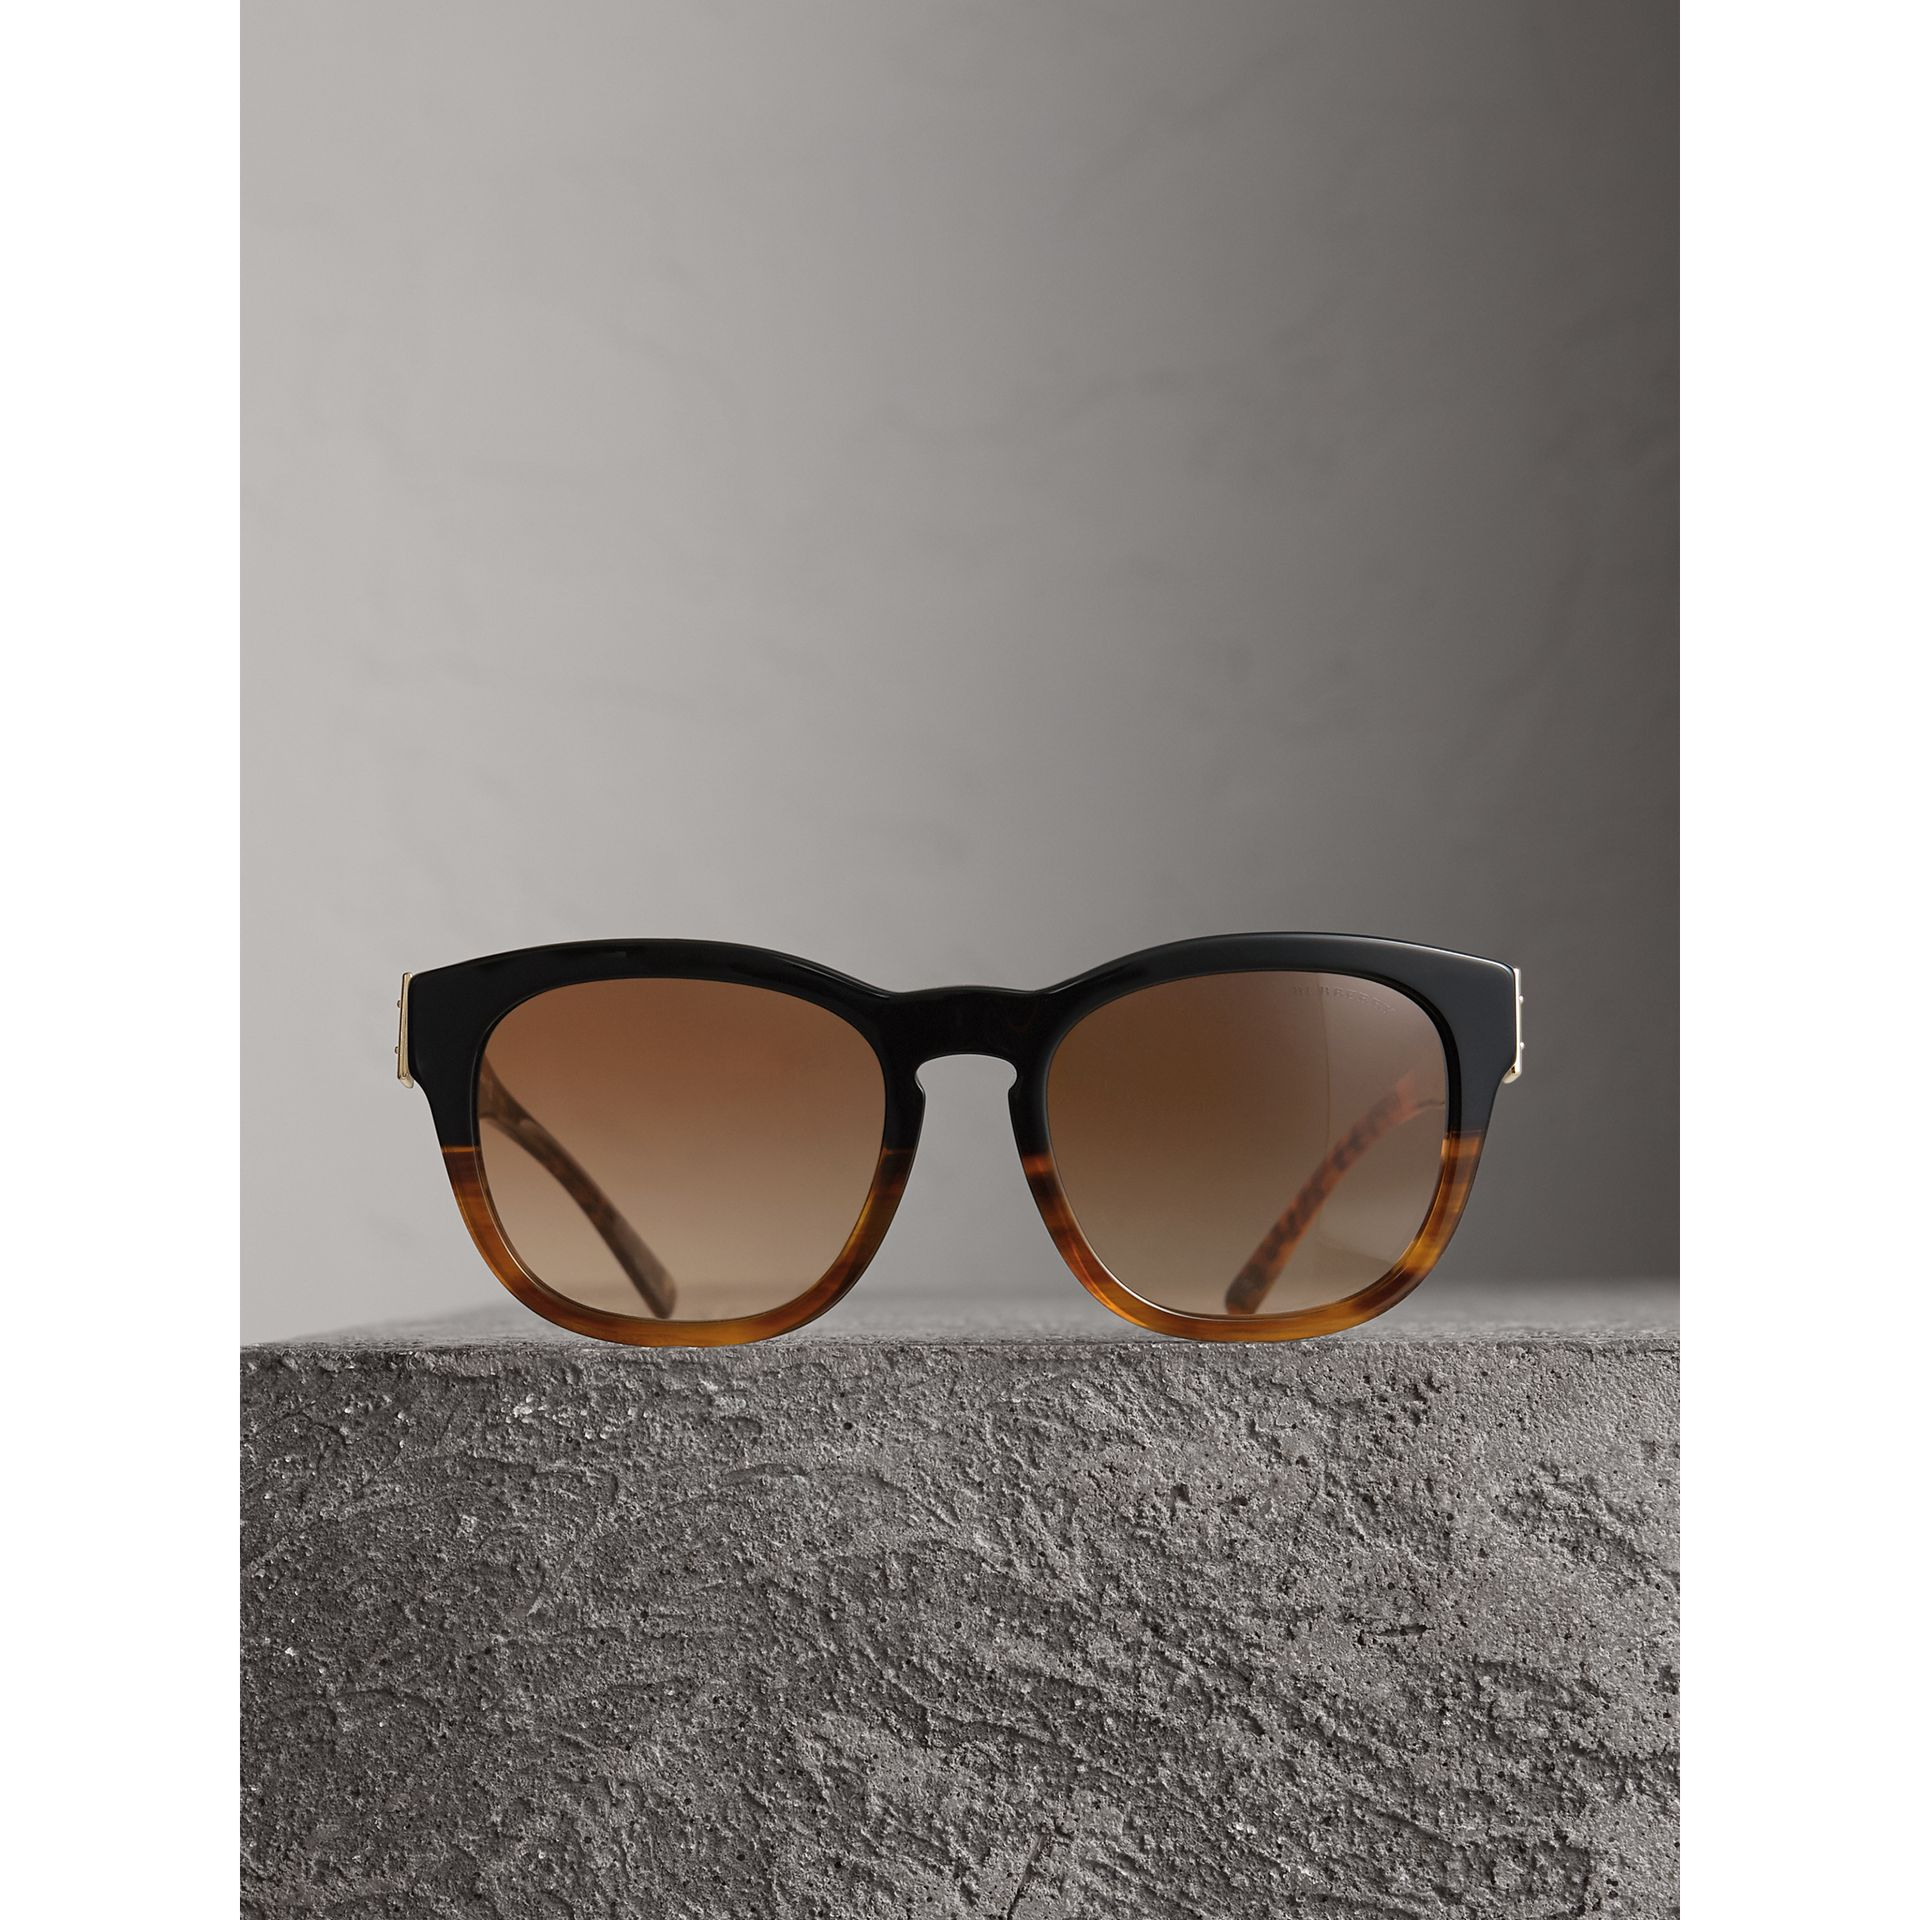 Buckle Detail Square Frame Sunglasses in Black - Women | Burberry United Kingdom - gallery image 3